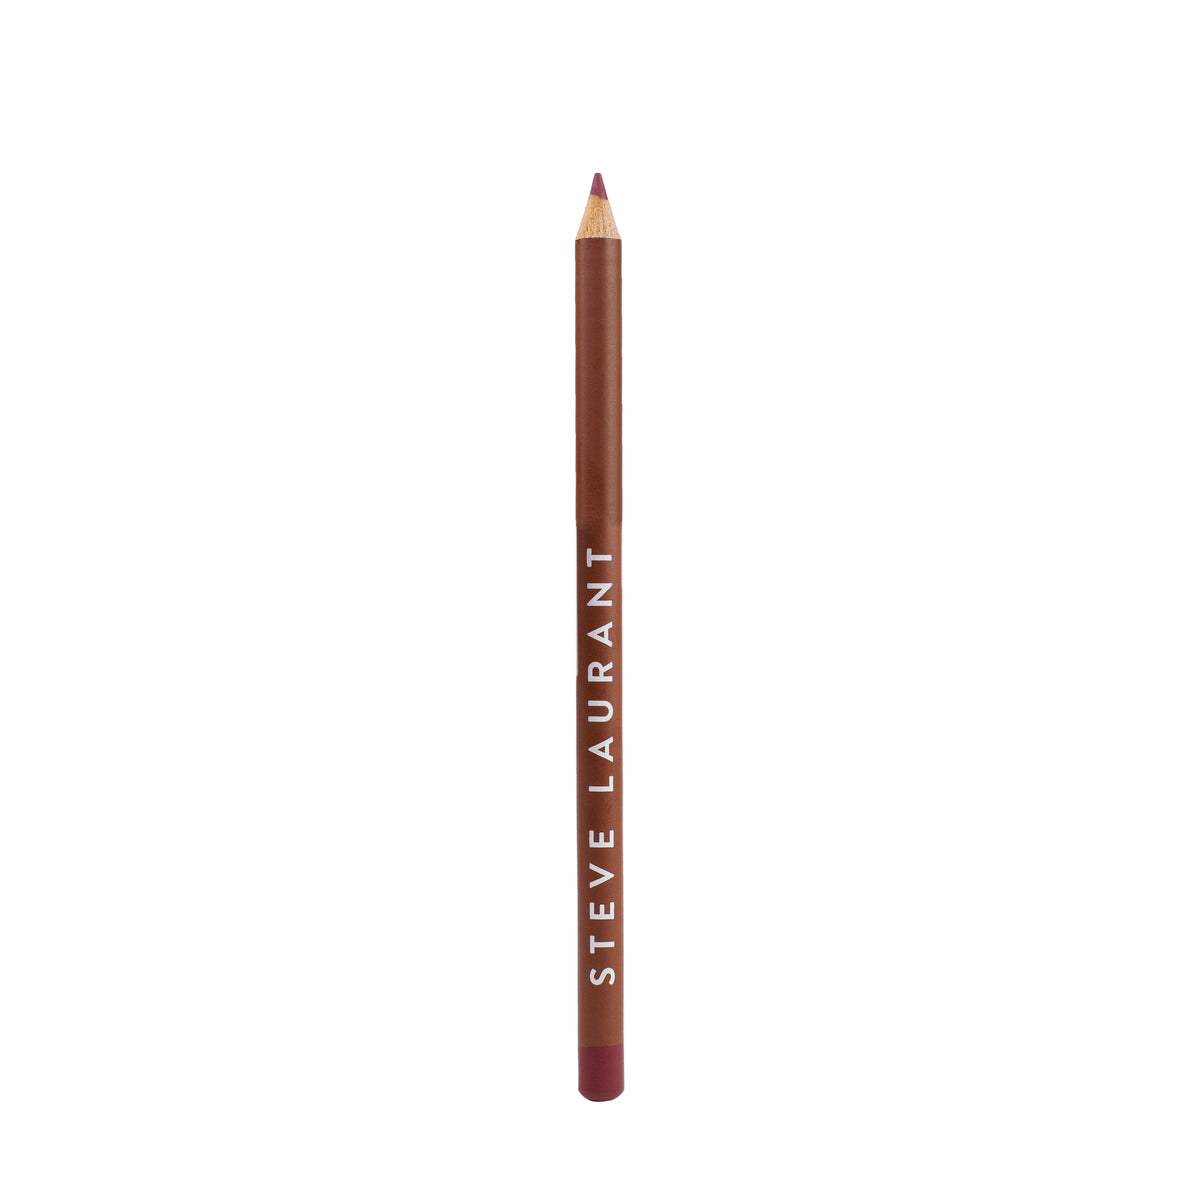 Steve Laurant - Vogue Lip Liner